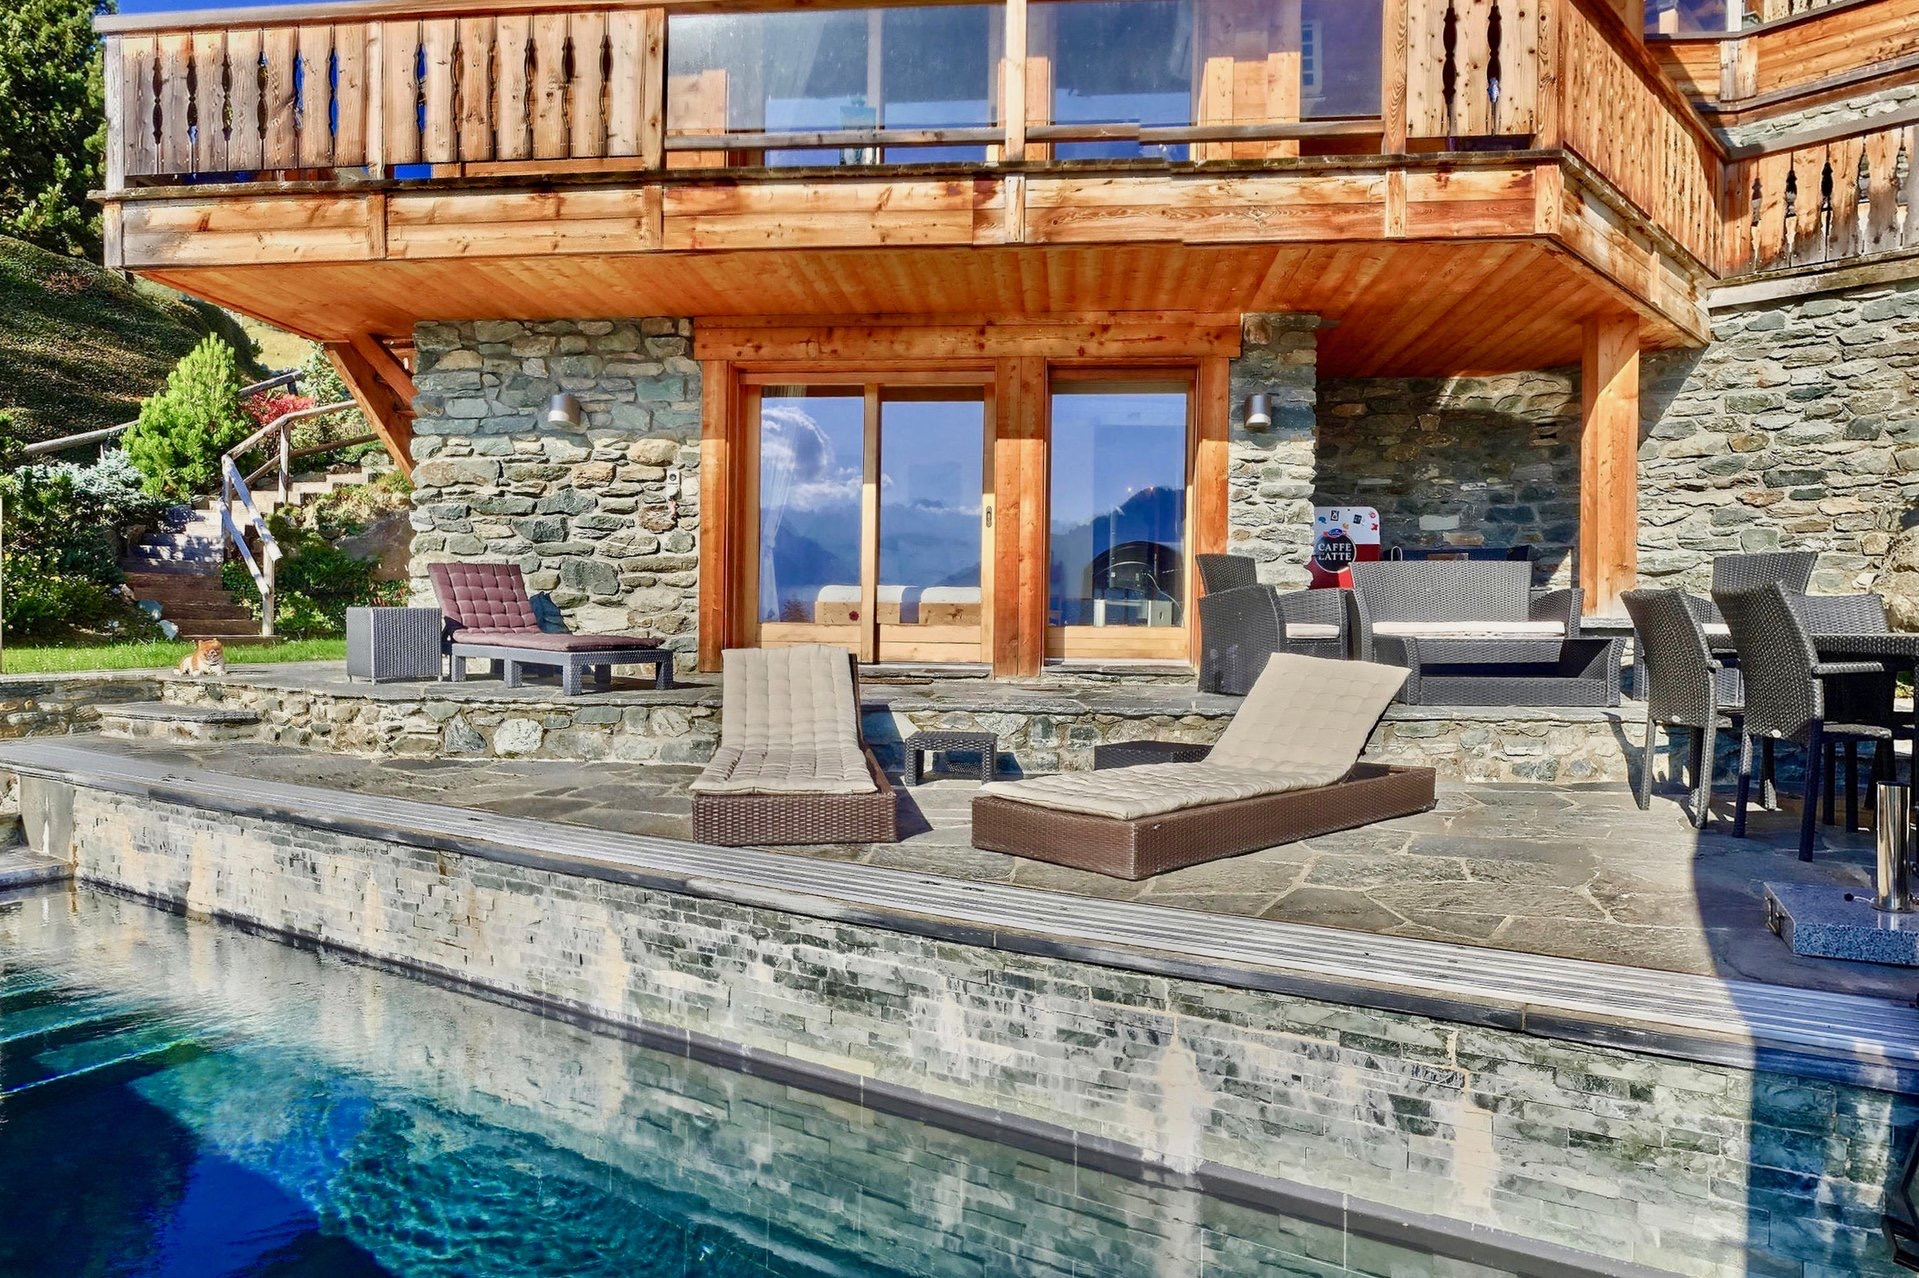 Beautiful chalet in Switzerland, in the center of the Verbier resort in the Alps